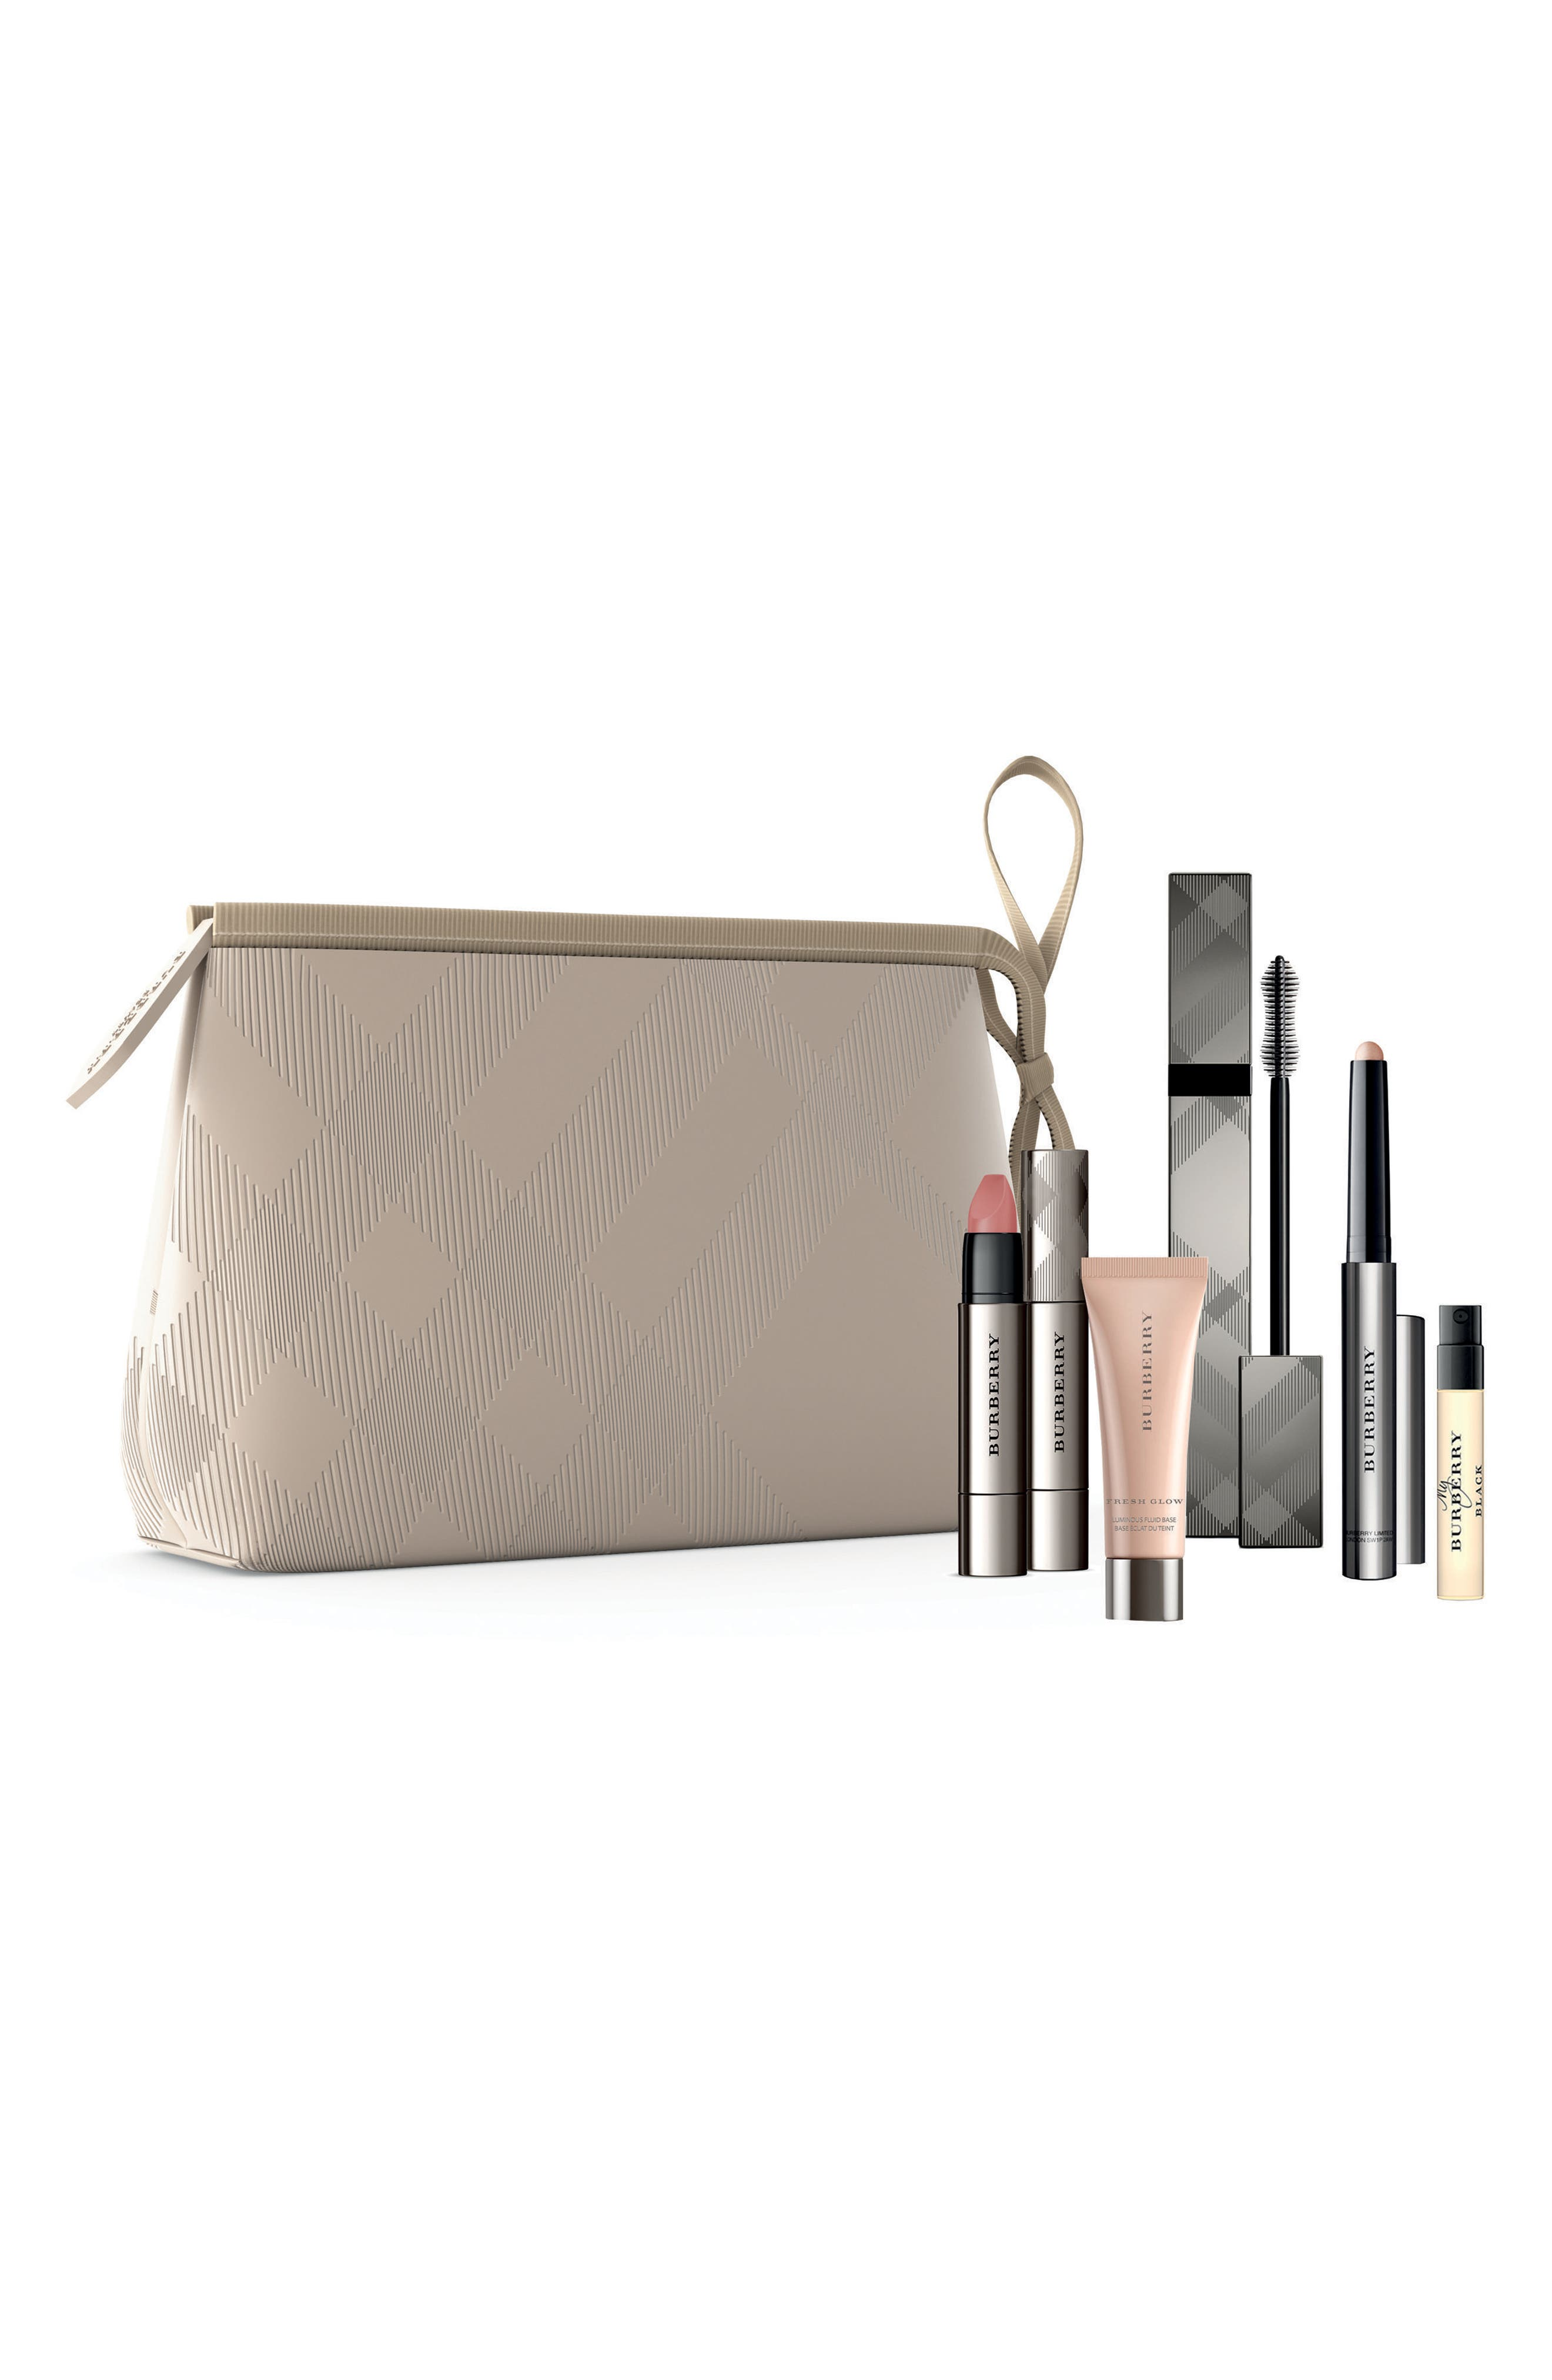 Burberry Beauty Fragrance & Makeup Set ($100 Value)